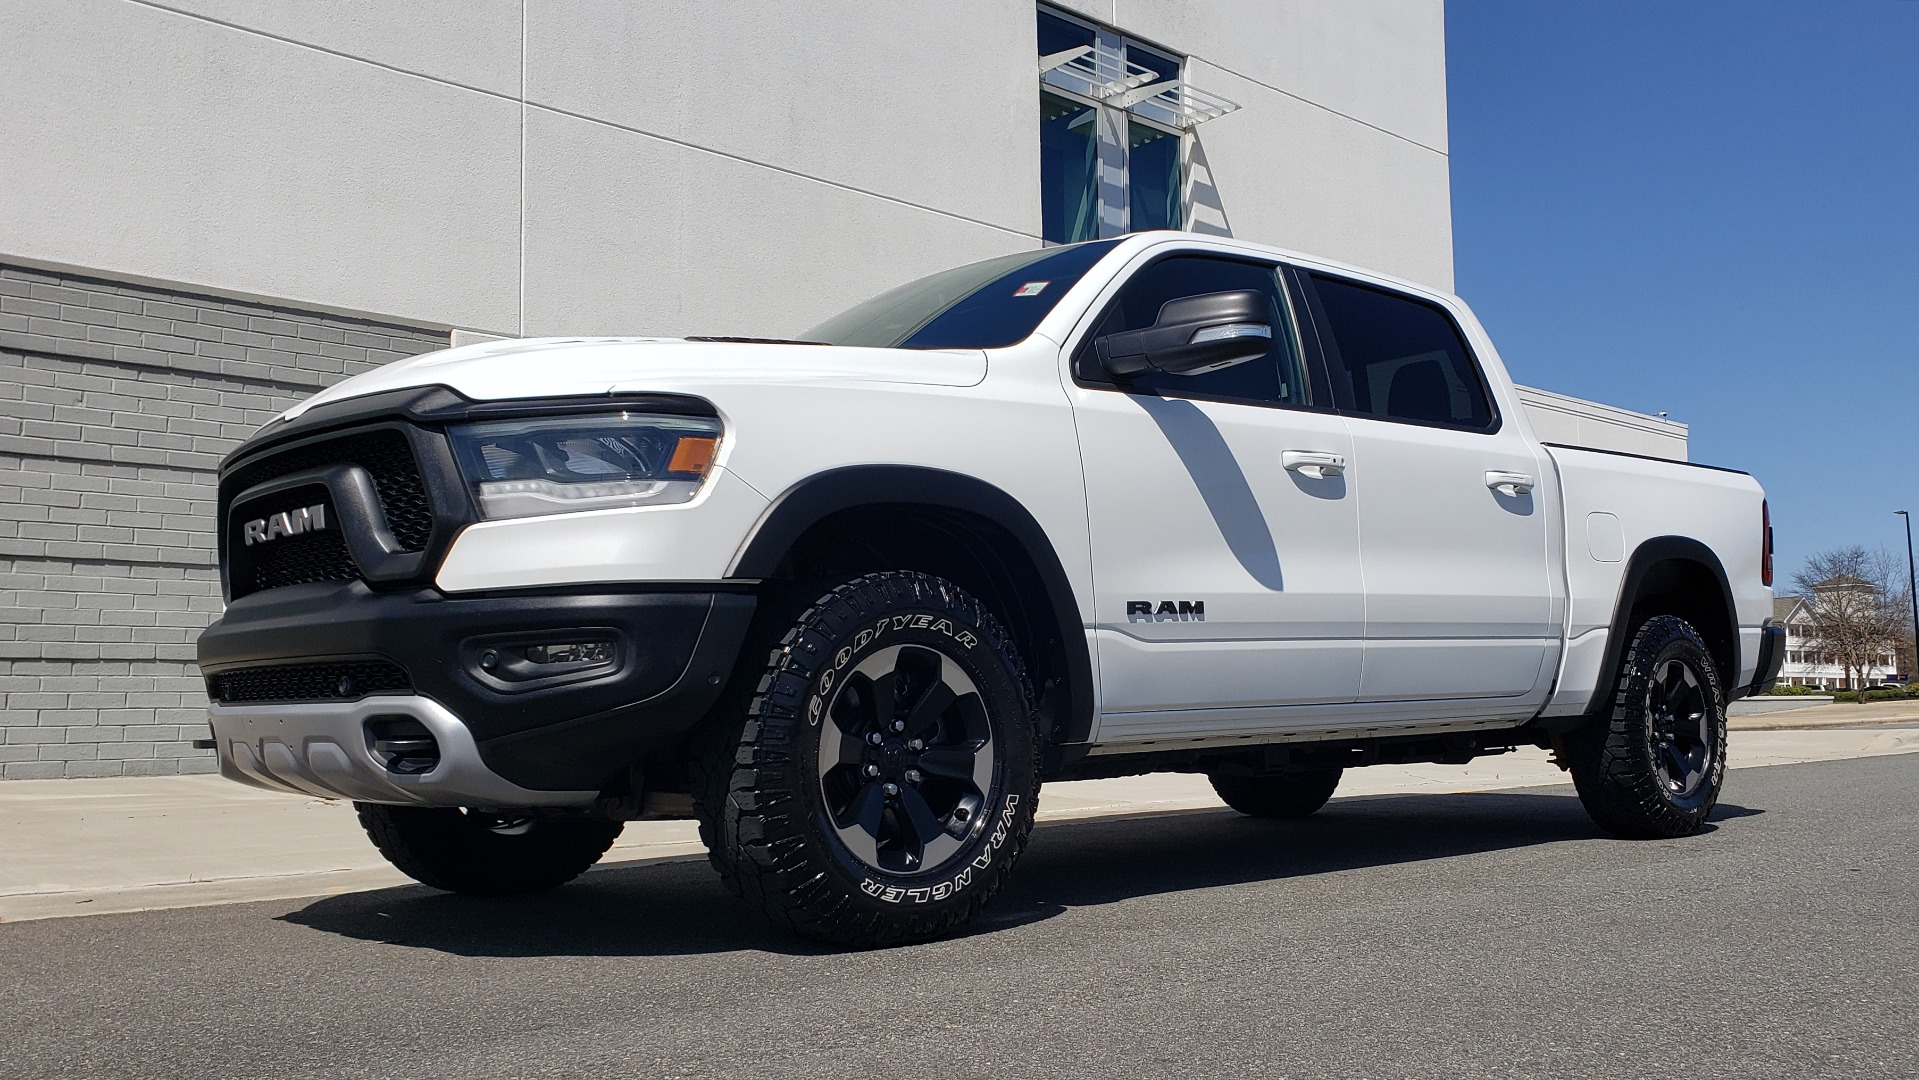 Used 2019 Ram 1500 REBEL CREWCAB 4X4 / 5.7L V8 HEMI / 8-SPD AUTO / REARVIEW for sale Sold at Formula Imports in Charlotte NC 28227 3